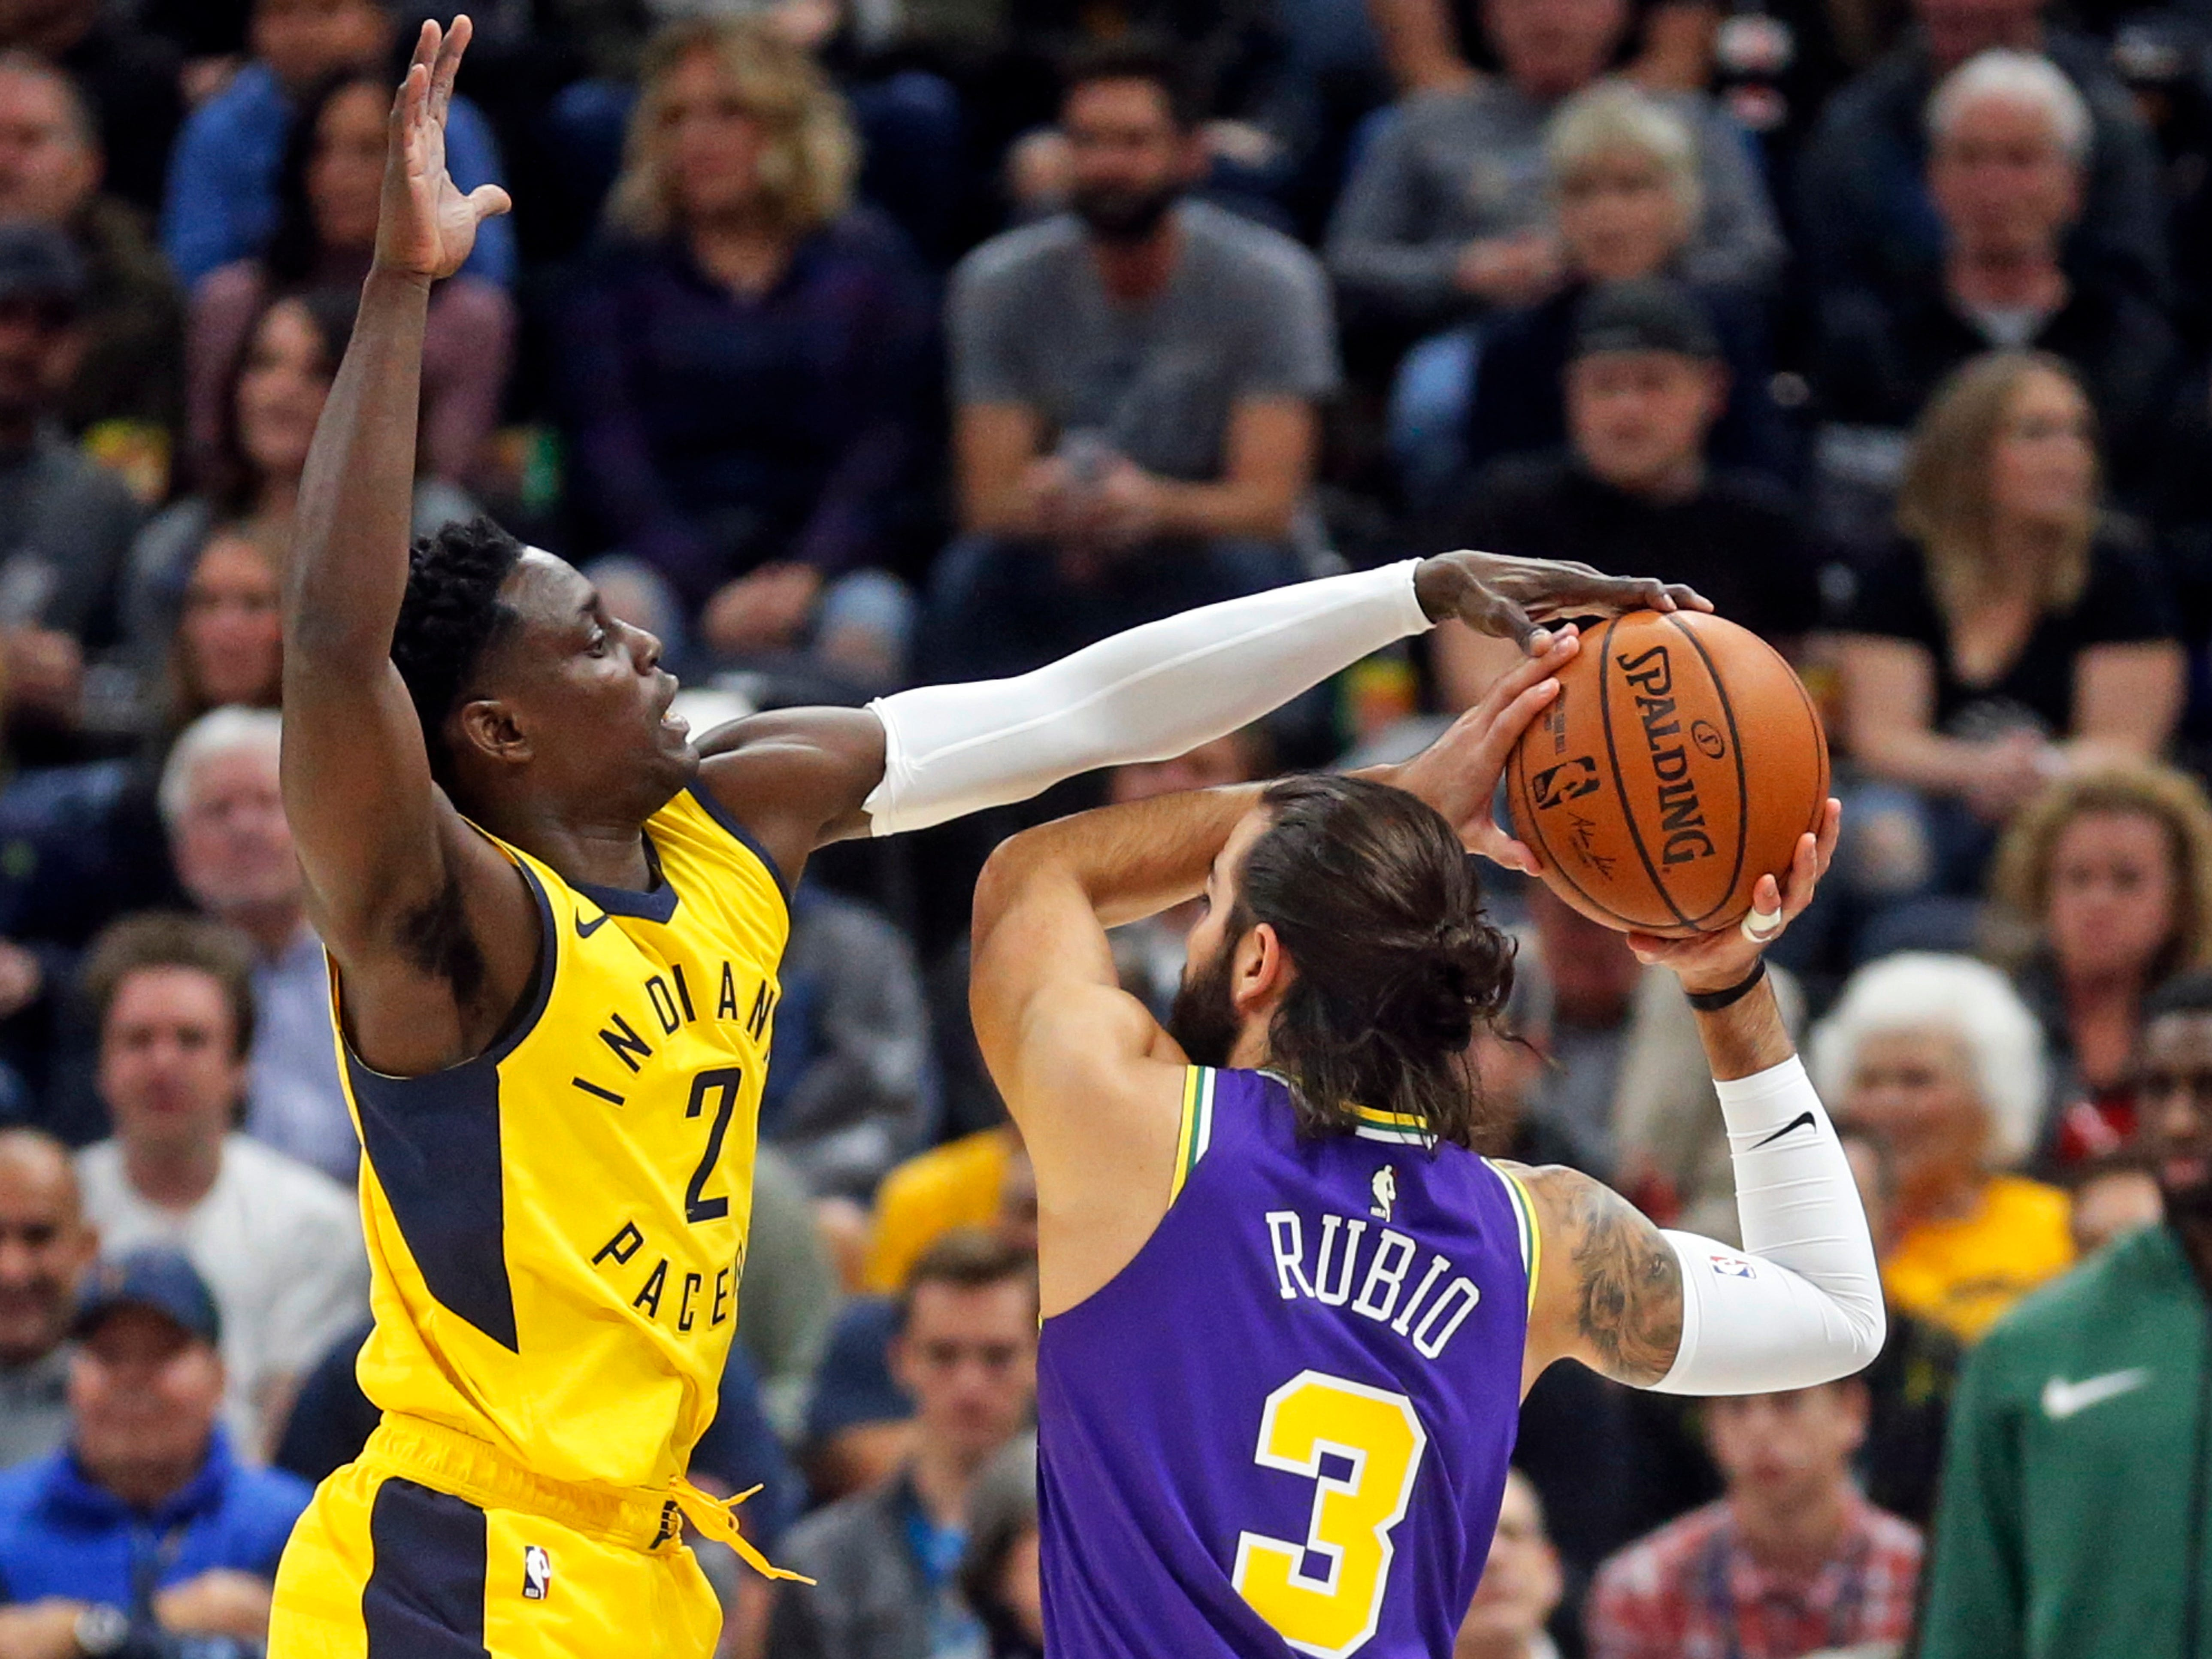 Indiana Pacers guard Darren Collison (2) defends against Utah Jazz guard Ricky Rubio (3) in the first half during an NBA basketball game Monday Nov. 26, 2018, in Salt Lake City.